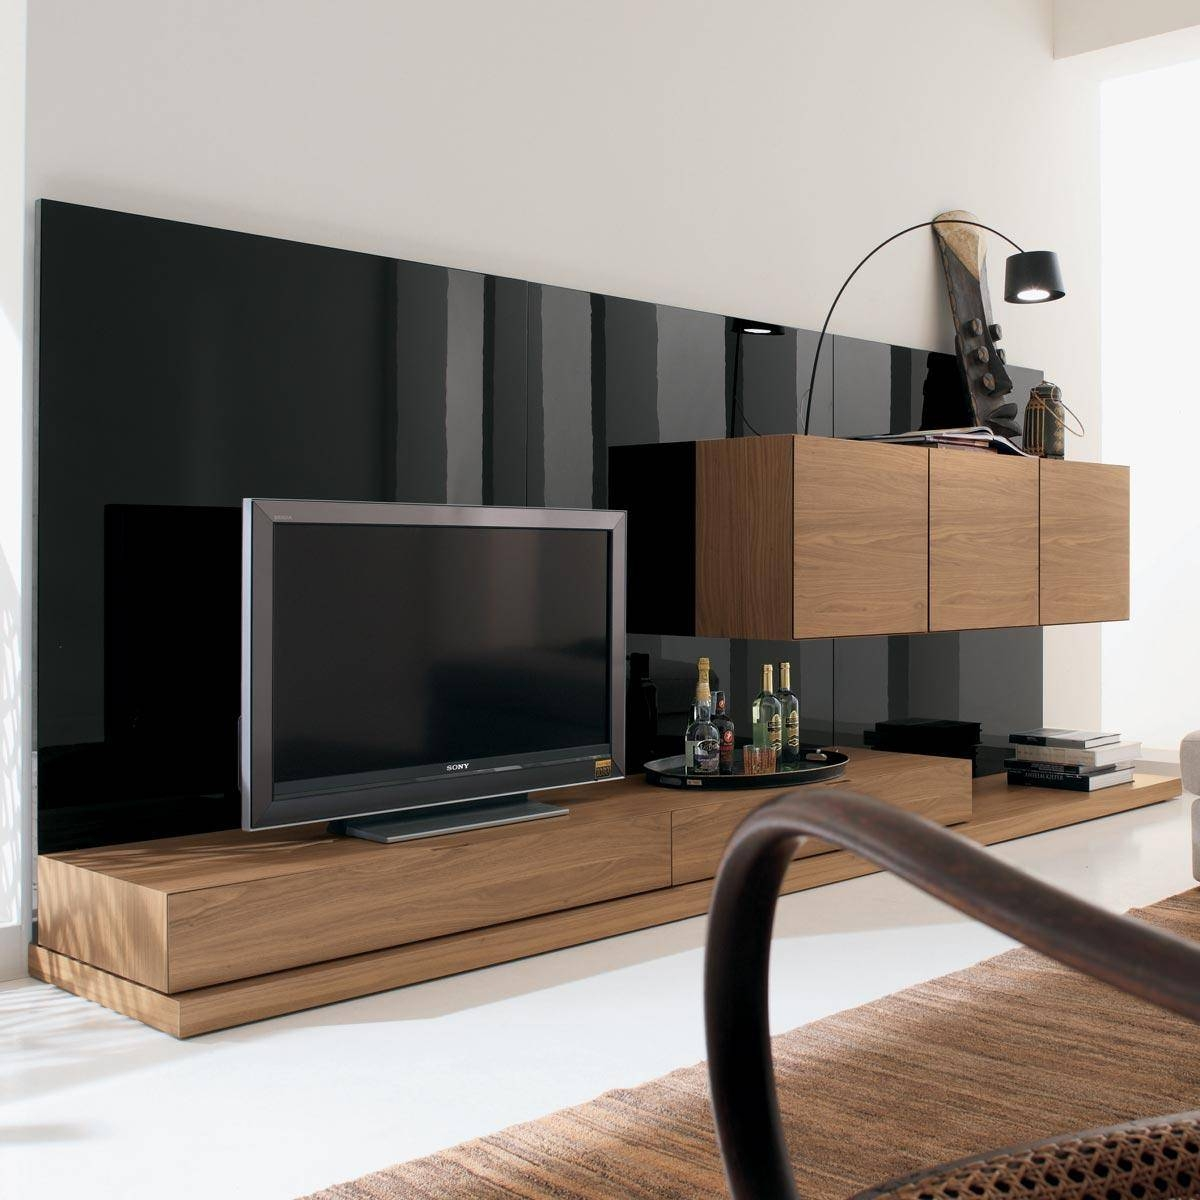 Solid Wood Tv Stand Also Long Tv Stand And Black Wall Living Room throughout Contemporary Tv Cabinets (Image 15 of 15)